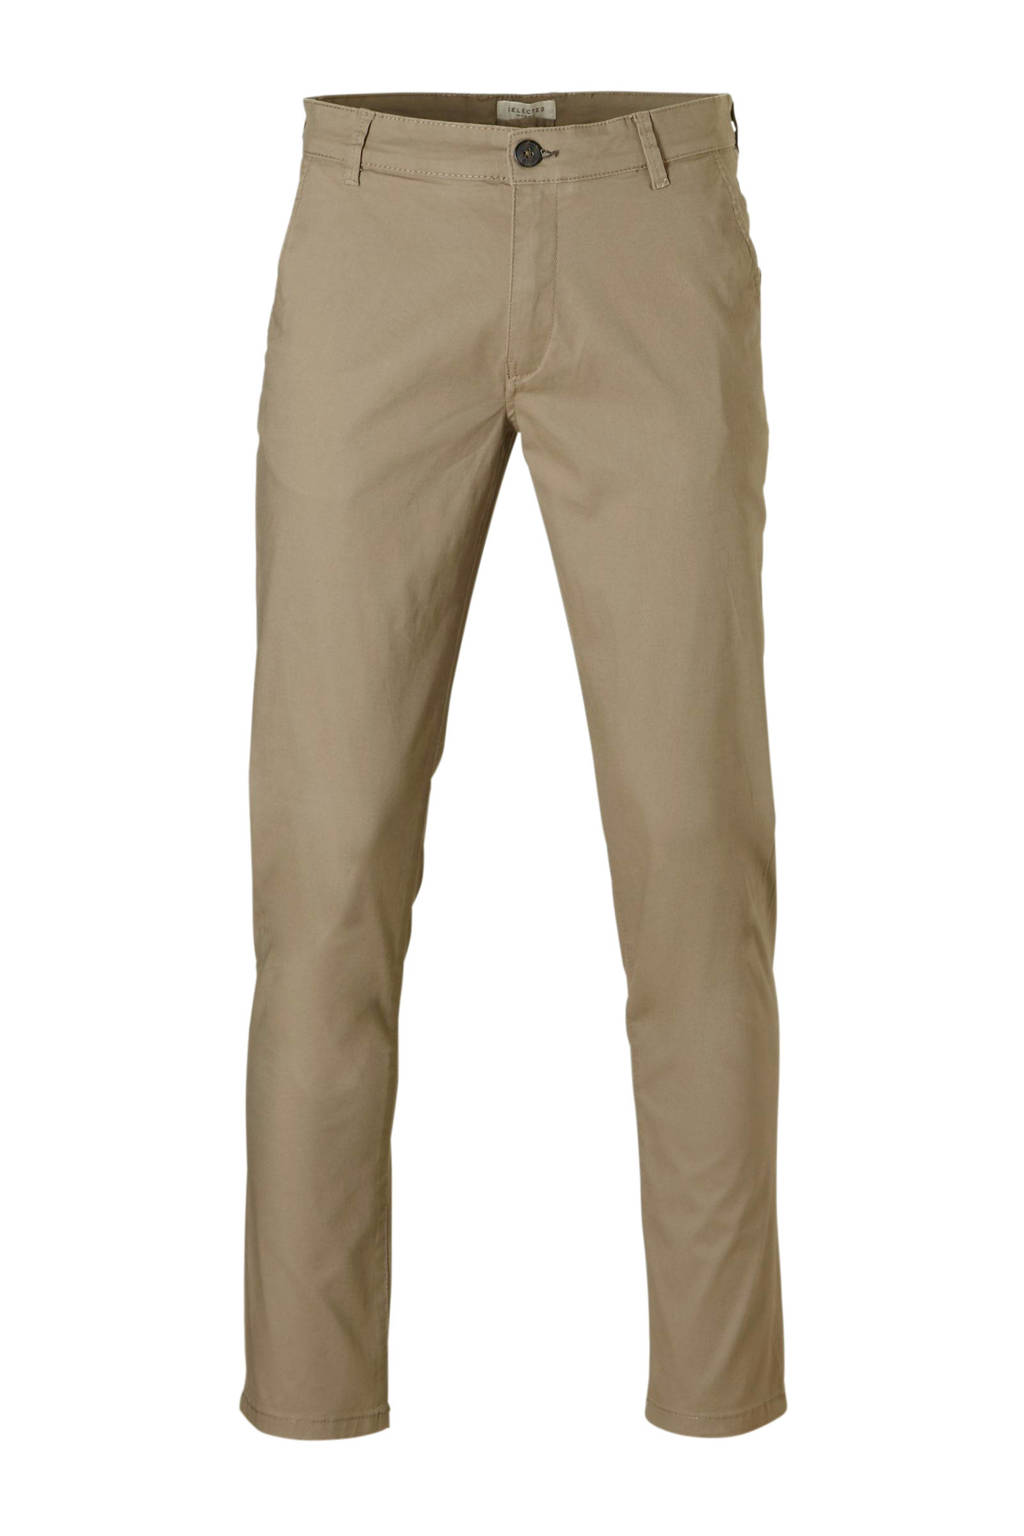 SELECTED HOMME chino, Camel